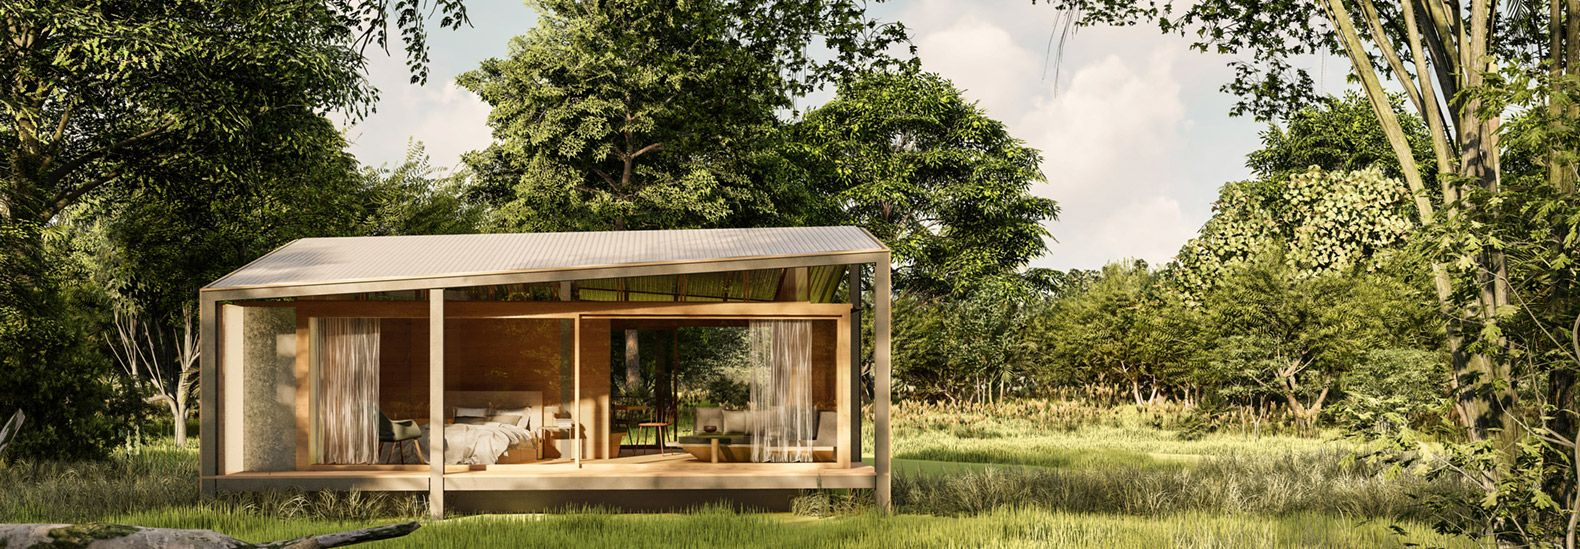 The Prefab Tiny Tetra House In Bali Is Made Of Recycled Waste In 2020 Studio Build Affordable Prefab Homes Modern Barn House